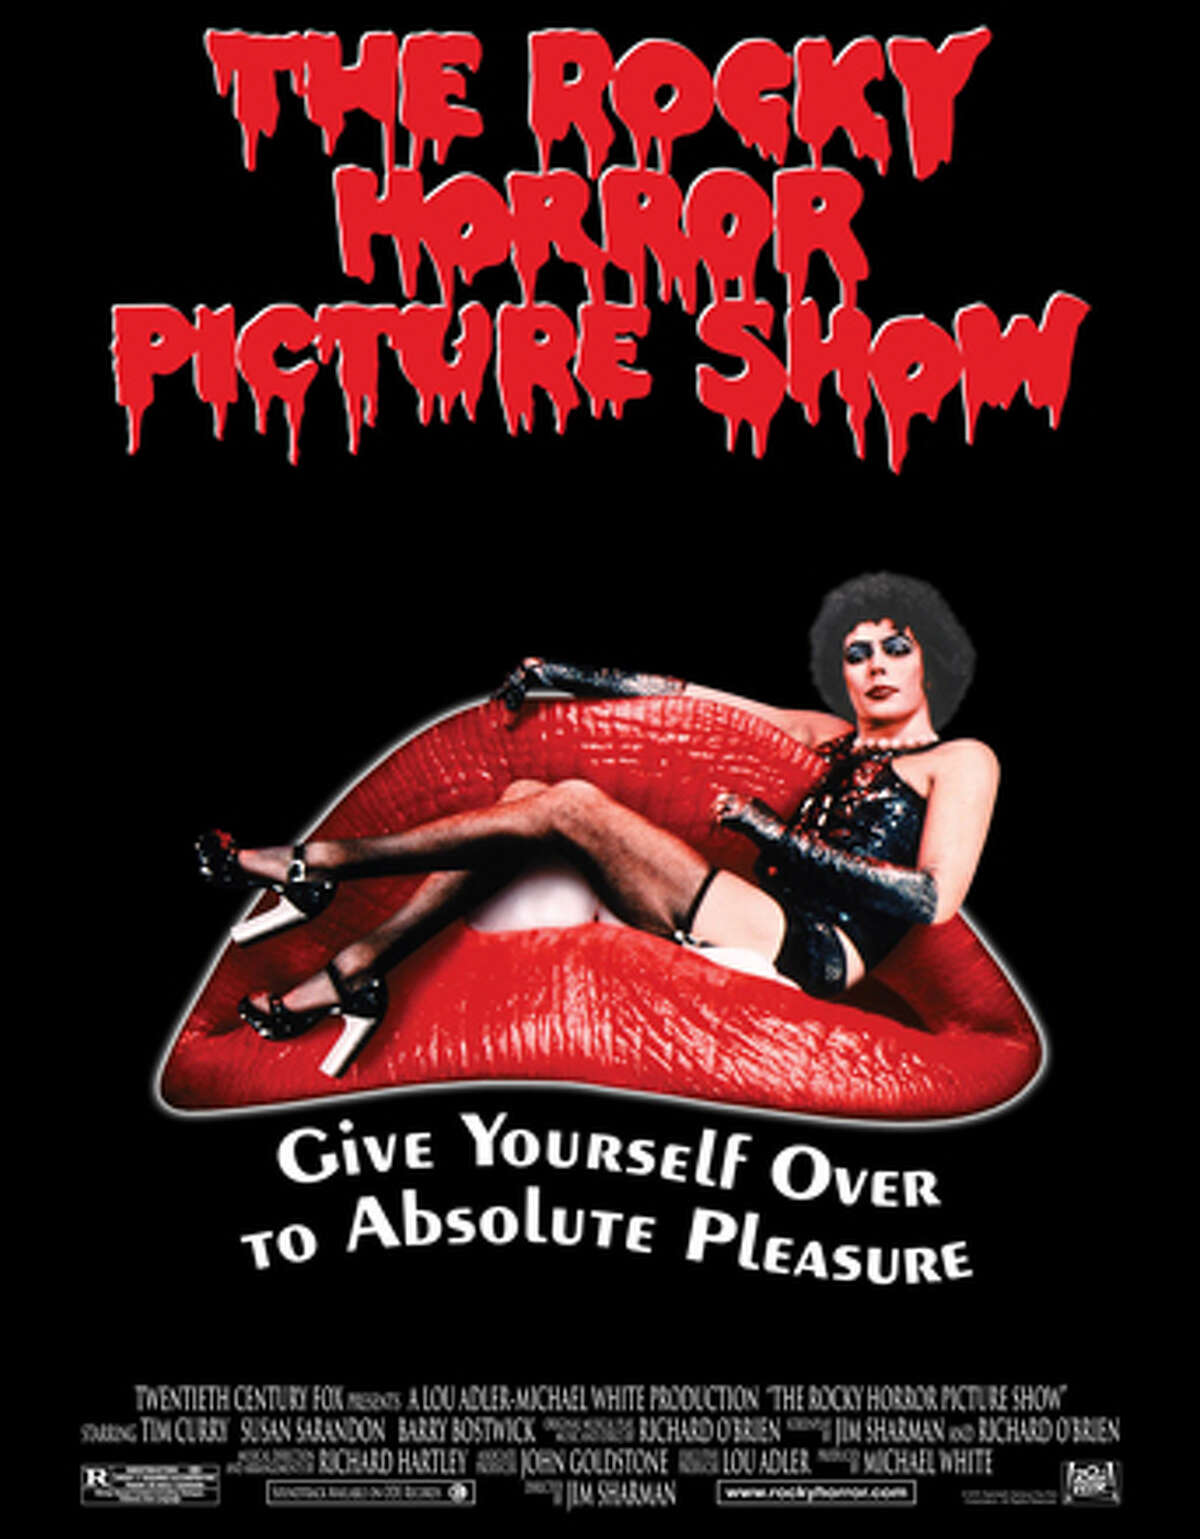 FRIDAY: 'CLASSIC MOVIE NIGHT: 'ROCKY HORROR PICTURE SHOW'' When:7:30 p.m., Oct. 28Where: Jefferson Theatre, 345 Fannin St., Beaumont Cost:$5Info:DiscoverBeaumont.com